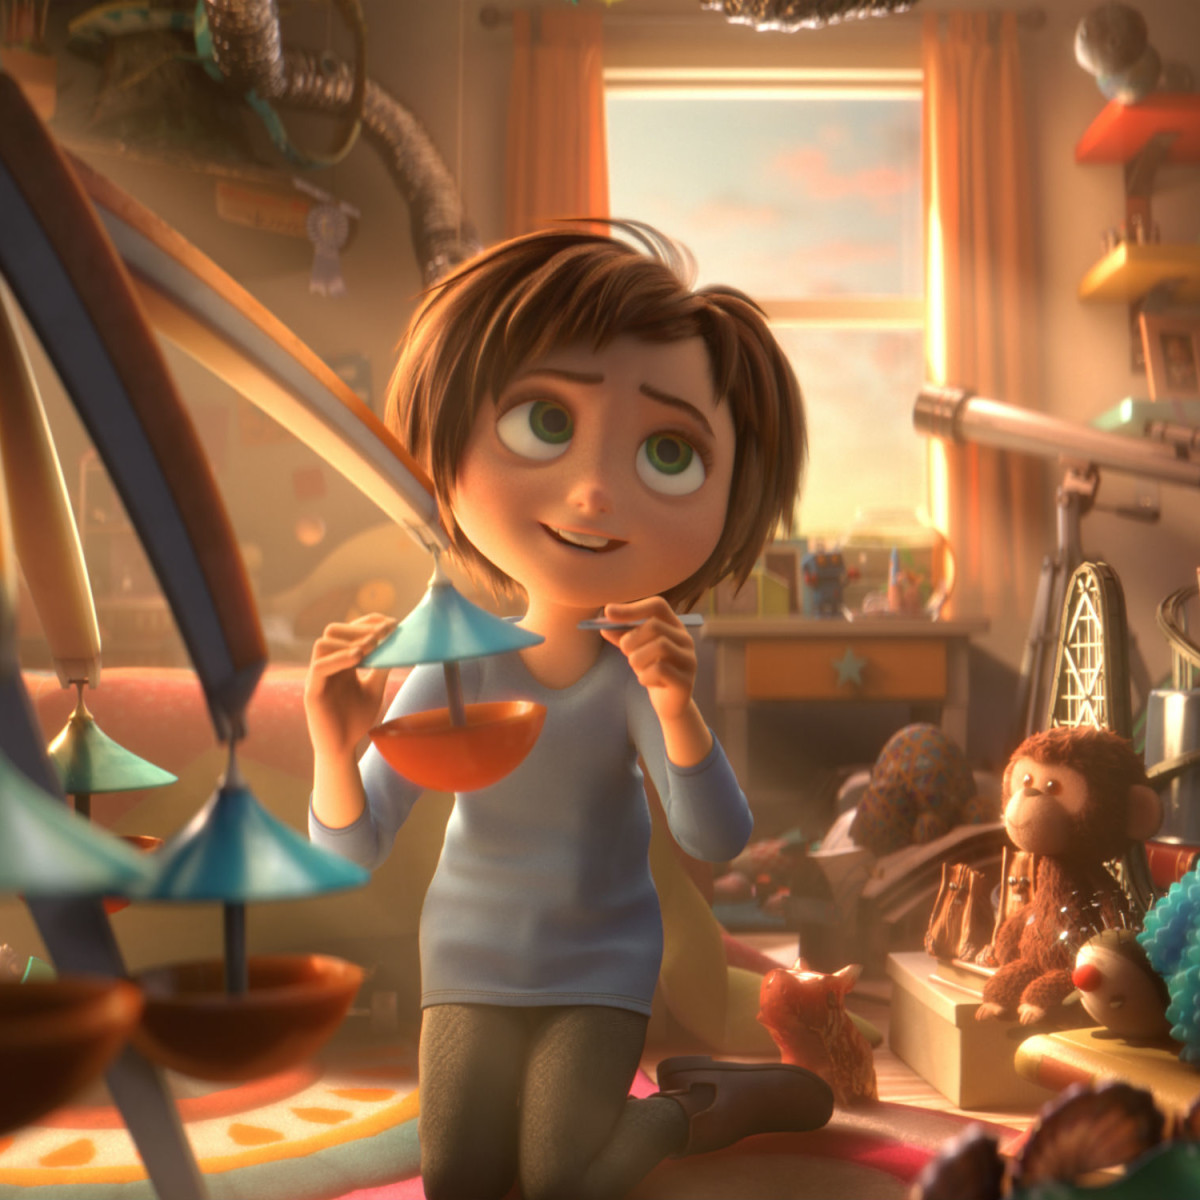 June (Brianna Denski) in Wonder Park